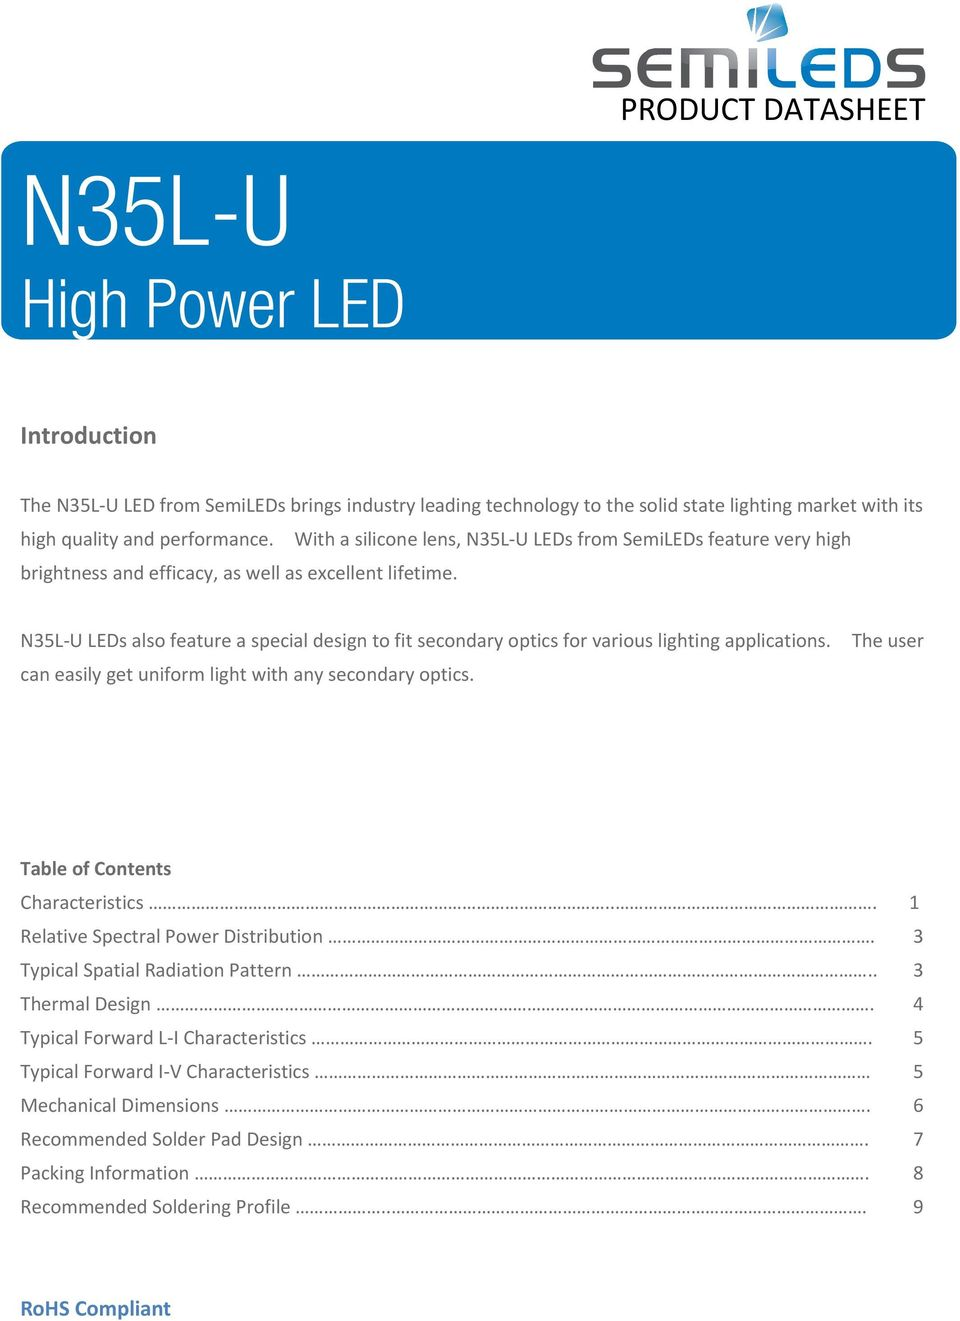 N35L-U LEDs also feature a special design to fit secondary optics for various lighting applications. can easily get uniform light with any secondary optics.